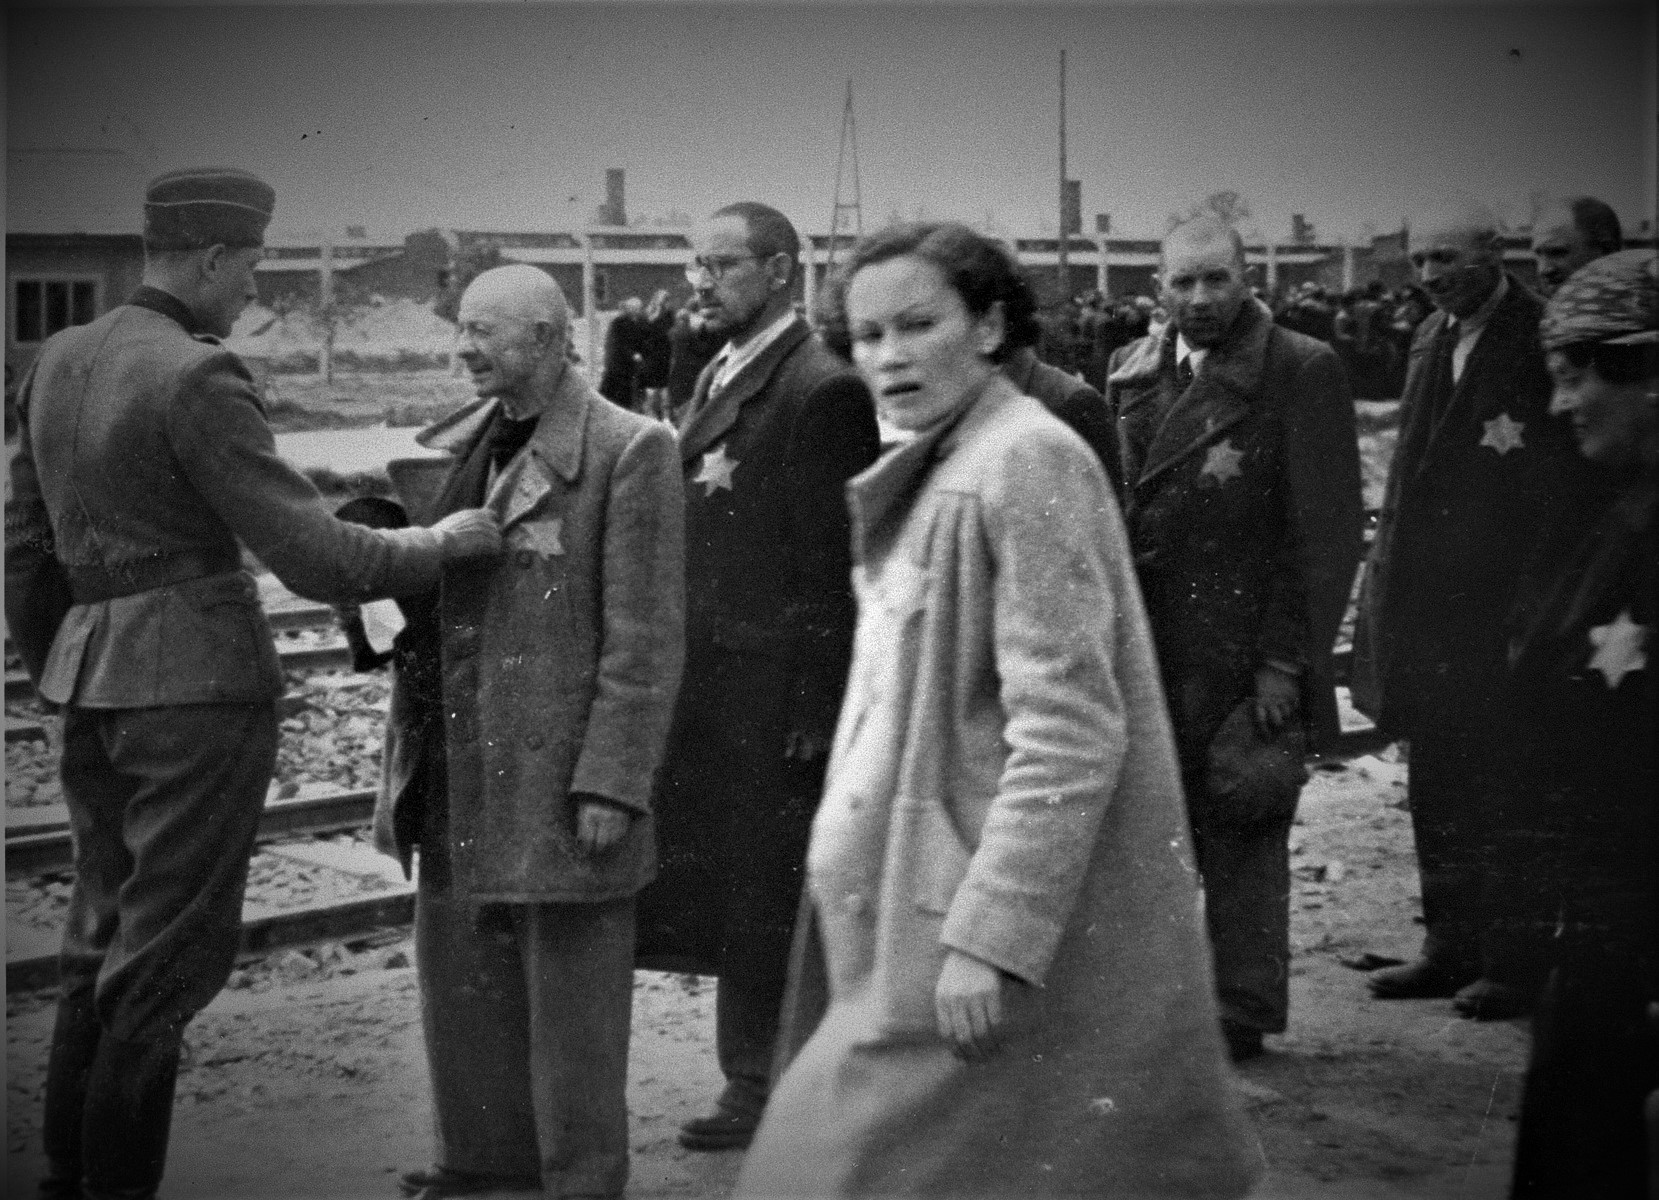 Making sense of Auschwitz: New perspectives on the Holocaust